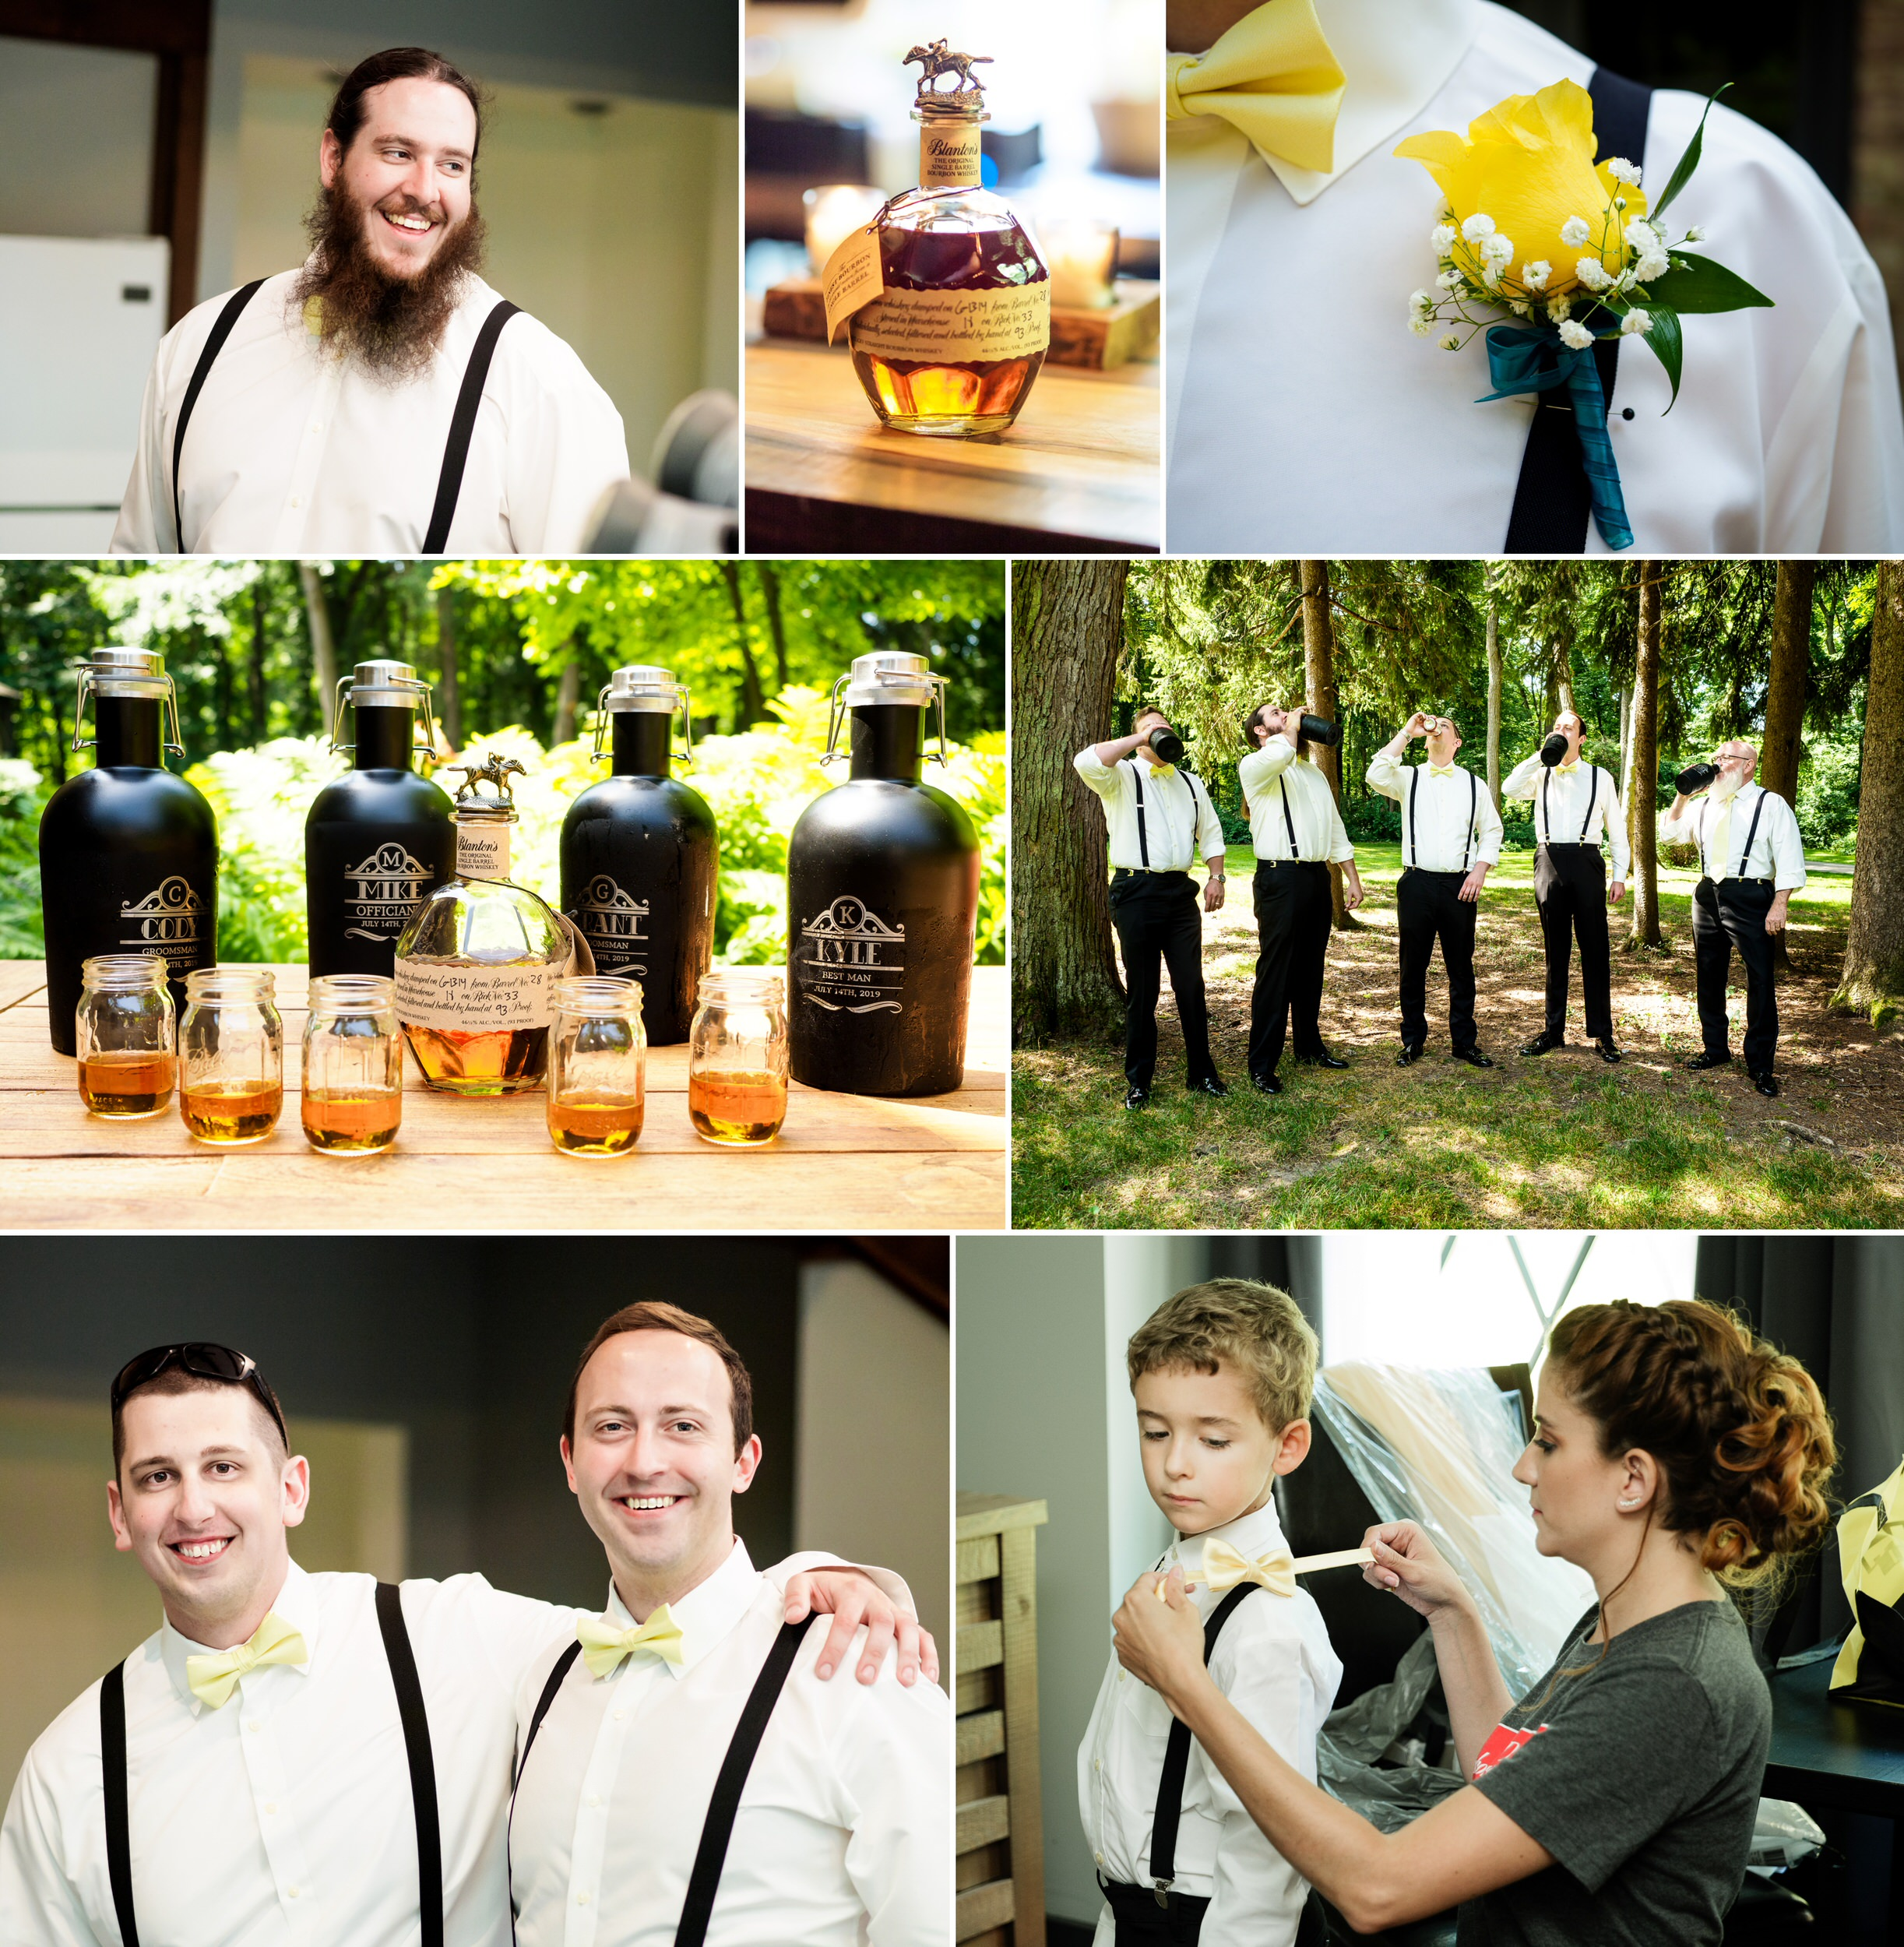 groomsmen-wedding-prep-Heston-Hills 1.jpg